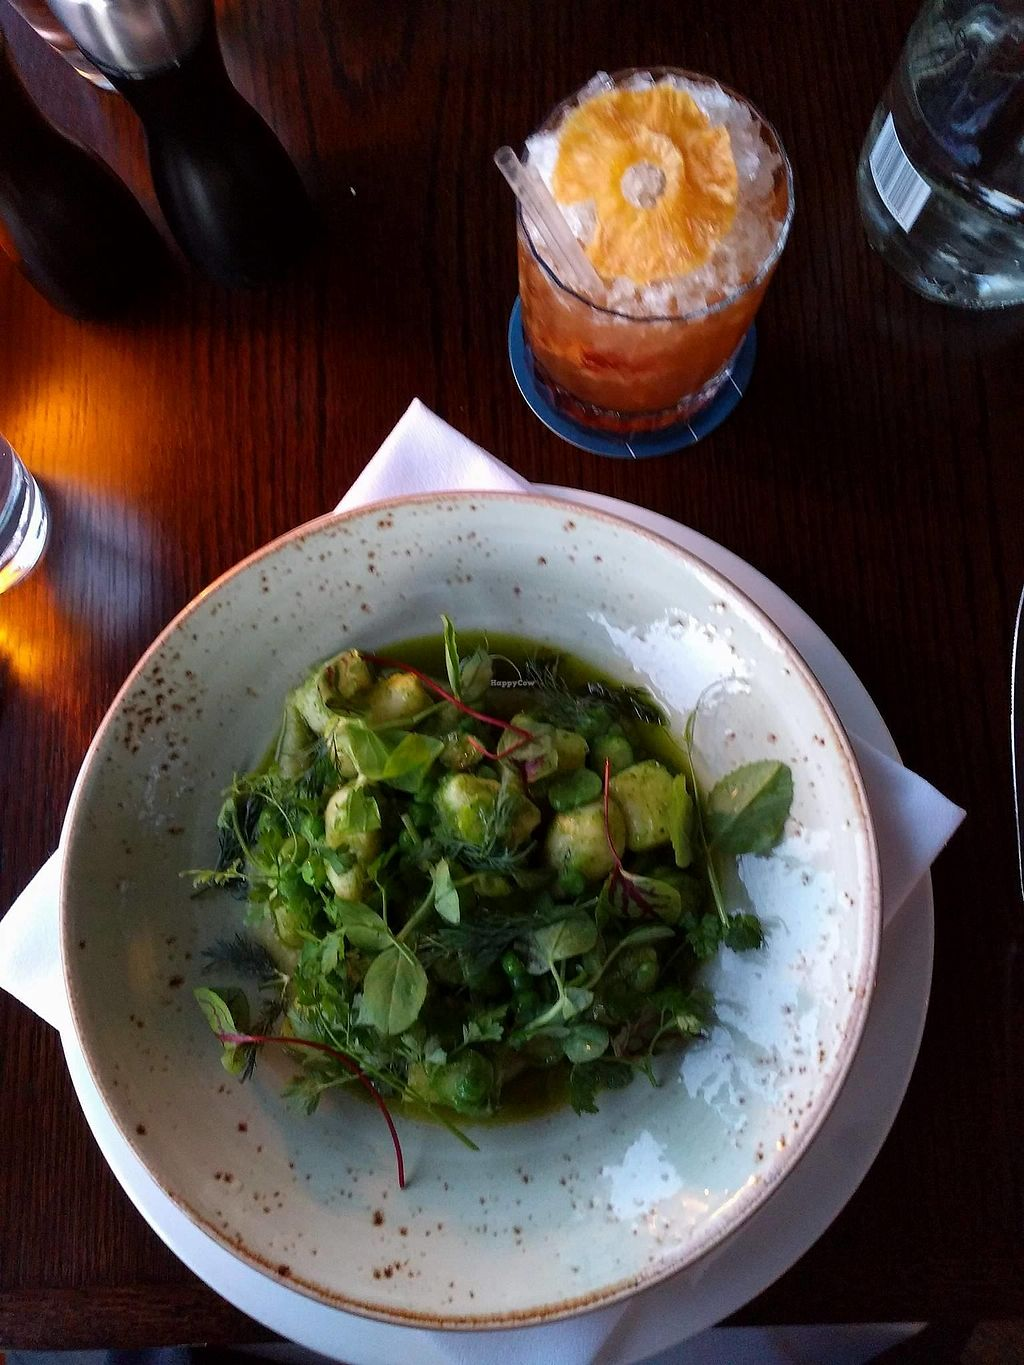 """Photo of Cafe Sydney  by <a href=""""/members/profile/Cycliz"""">Cycliz</a> <br/>Mix of greens and rhum cocktail <br/> January 4, 2018  - <a href='/contact/abuse/image/83779/342830'>Report</a>"""